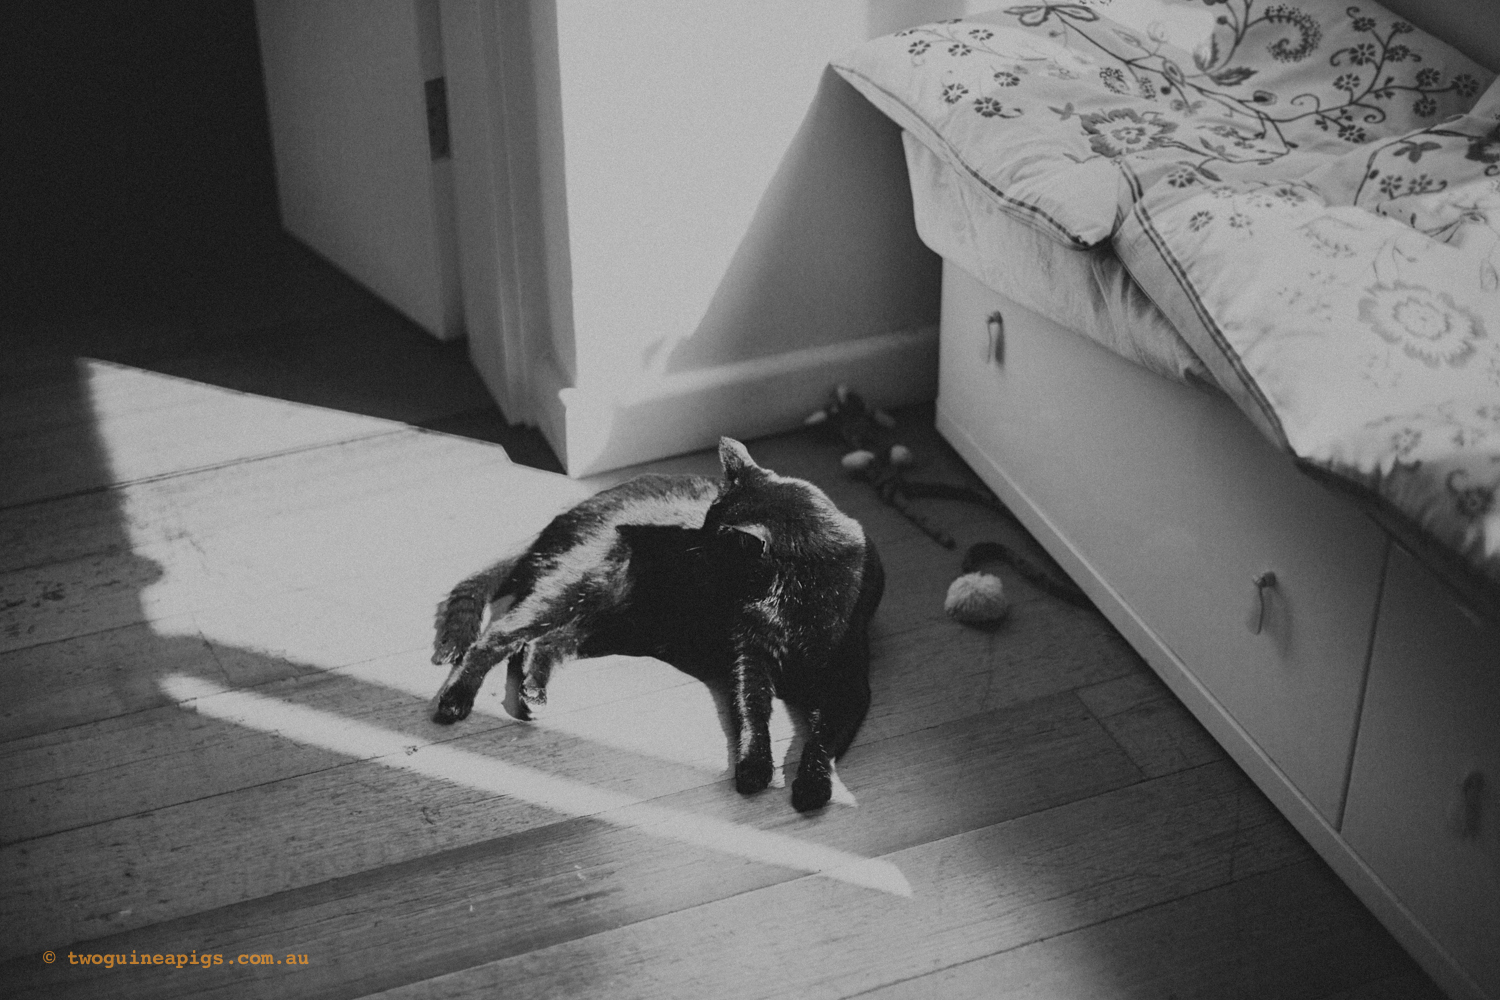 twoguineapigs_pet_photography_pf_sunroom_black_cats_1500.jpg